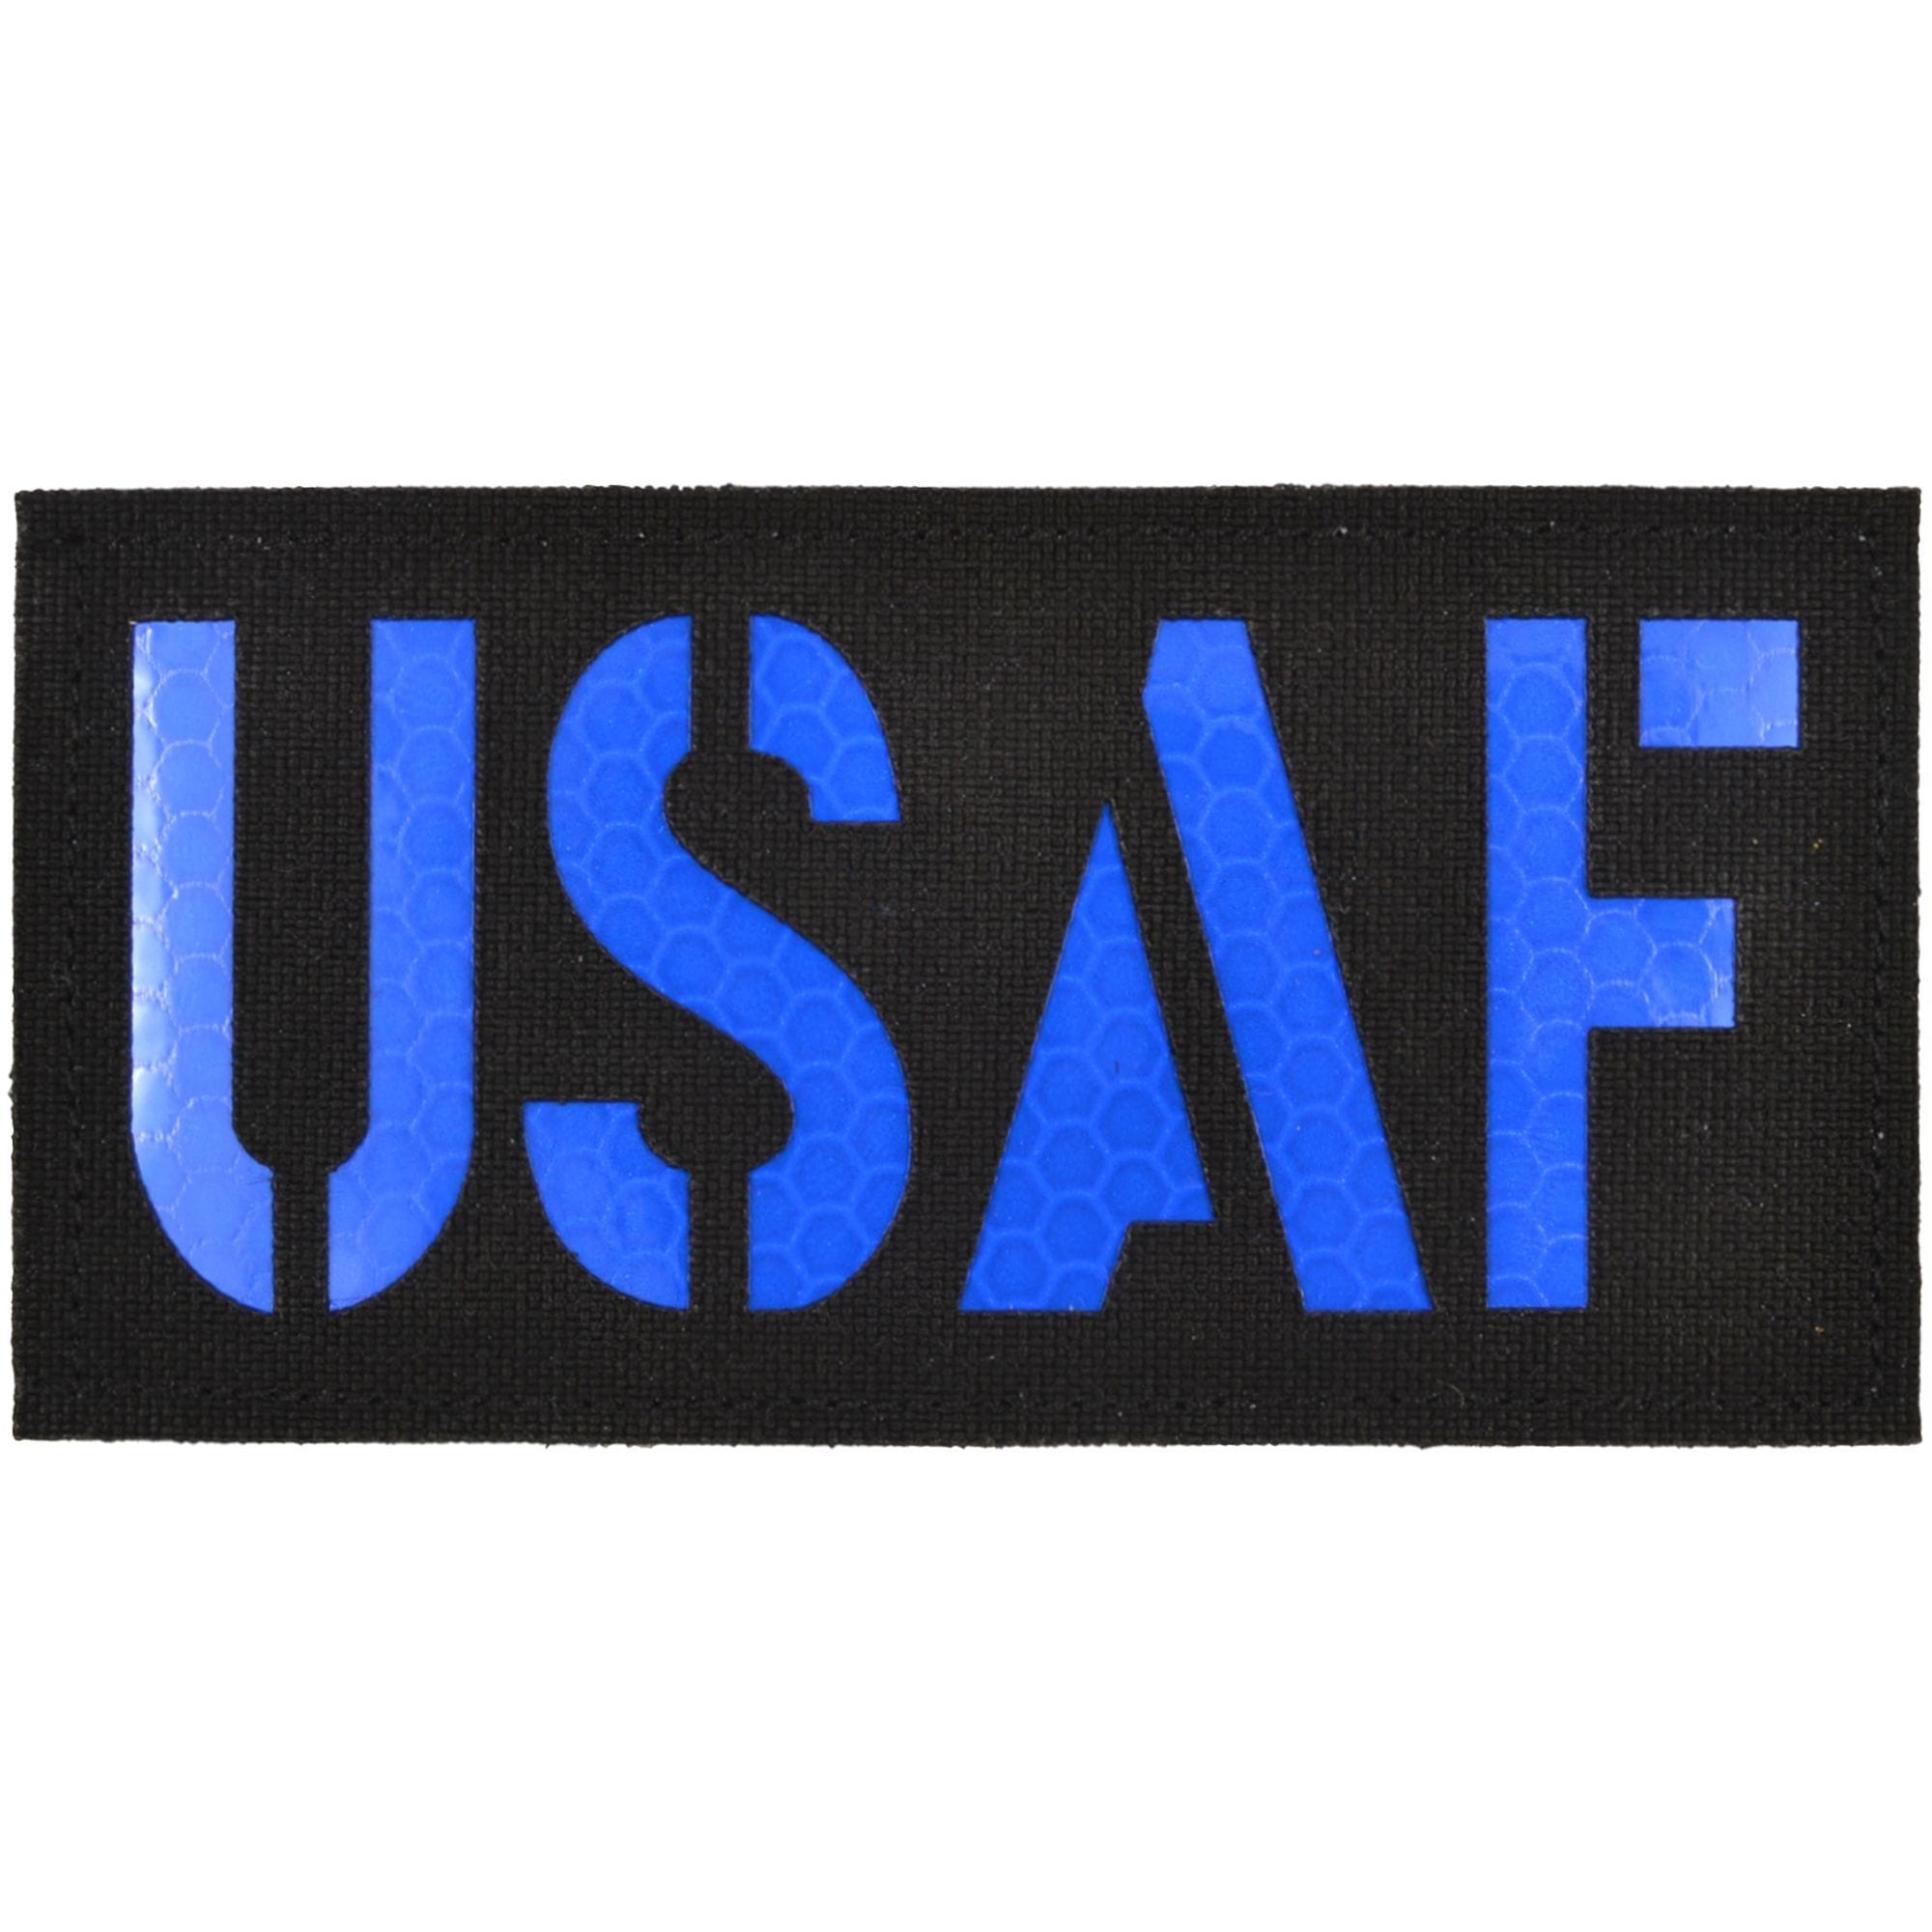 USAF (U.S. Air Force) Laser Cut - 2x4 CORDURA® Patch